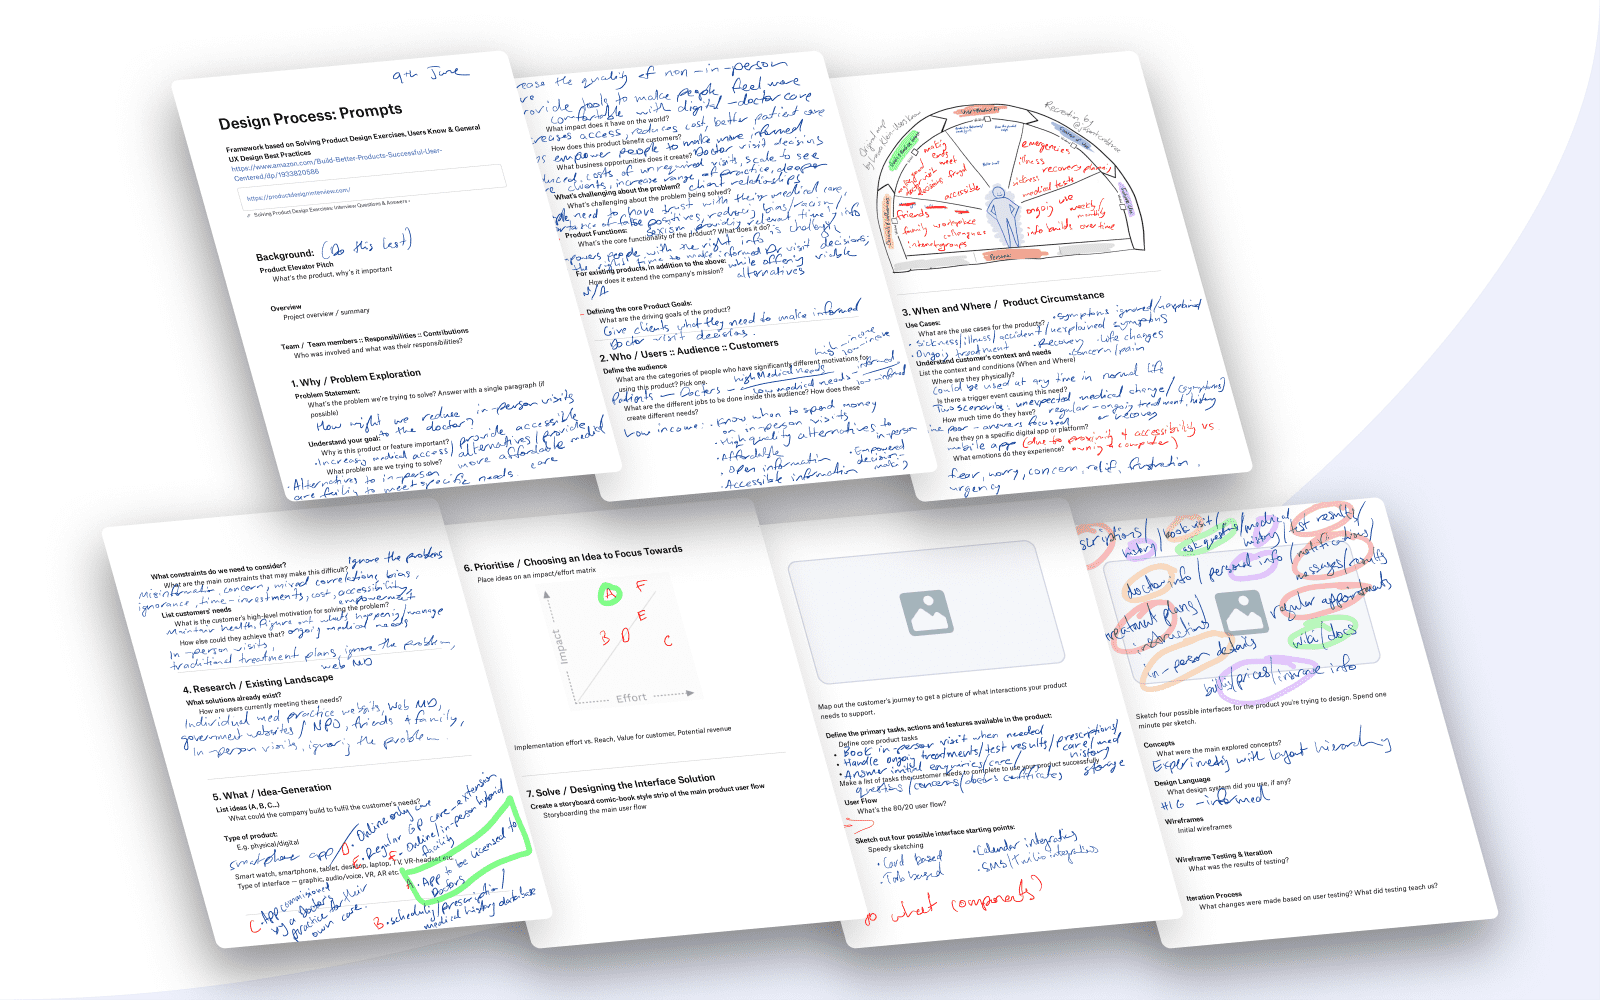 The messy handwritten design process I started with, spanning 7-pages of design process templates.